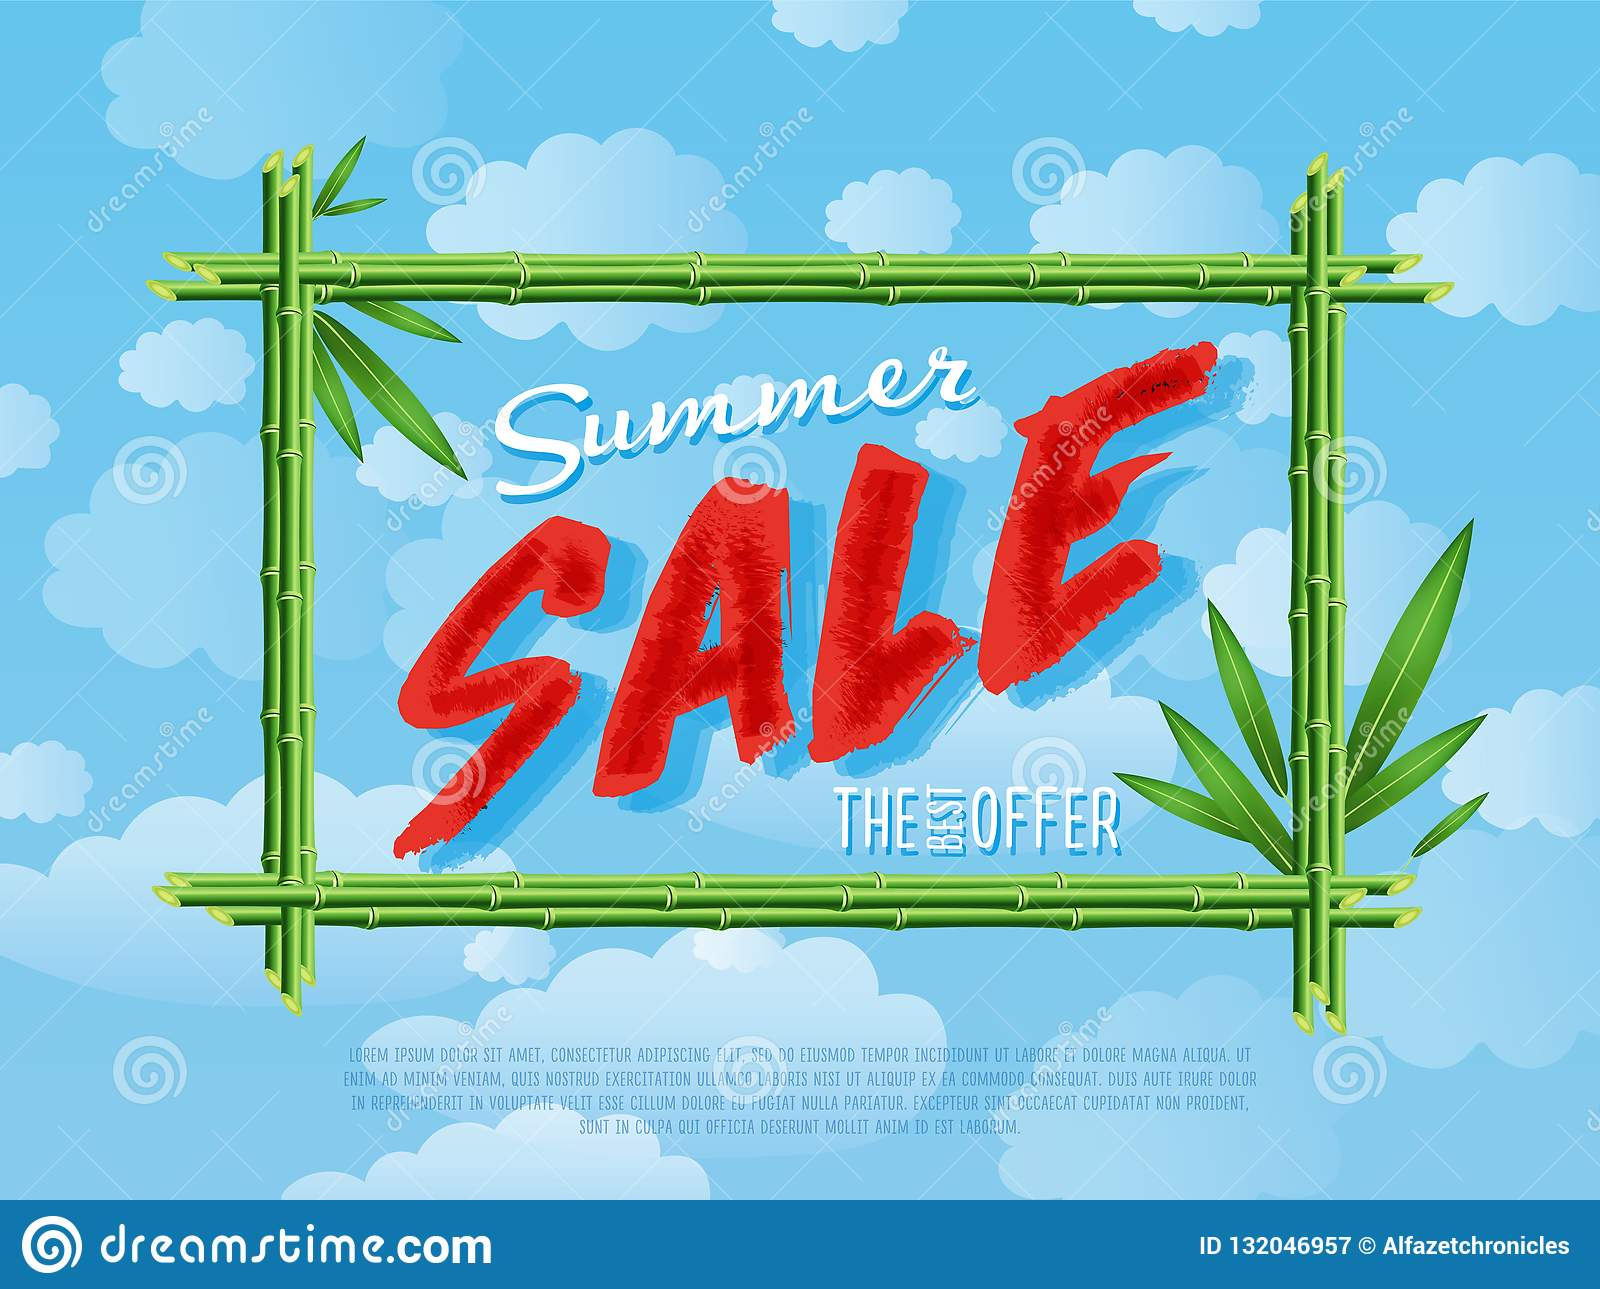 987f08b83 Summer Sale Poster For Retail Stock Illustration - Illustration of ...